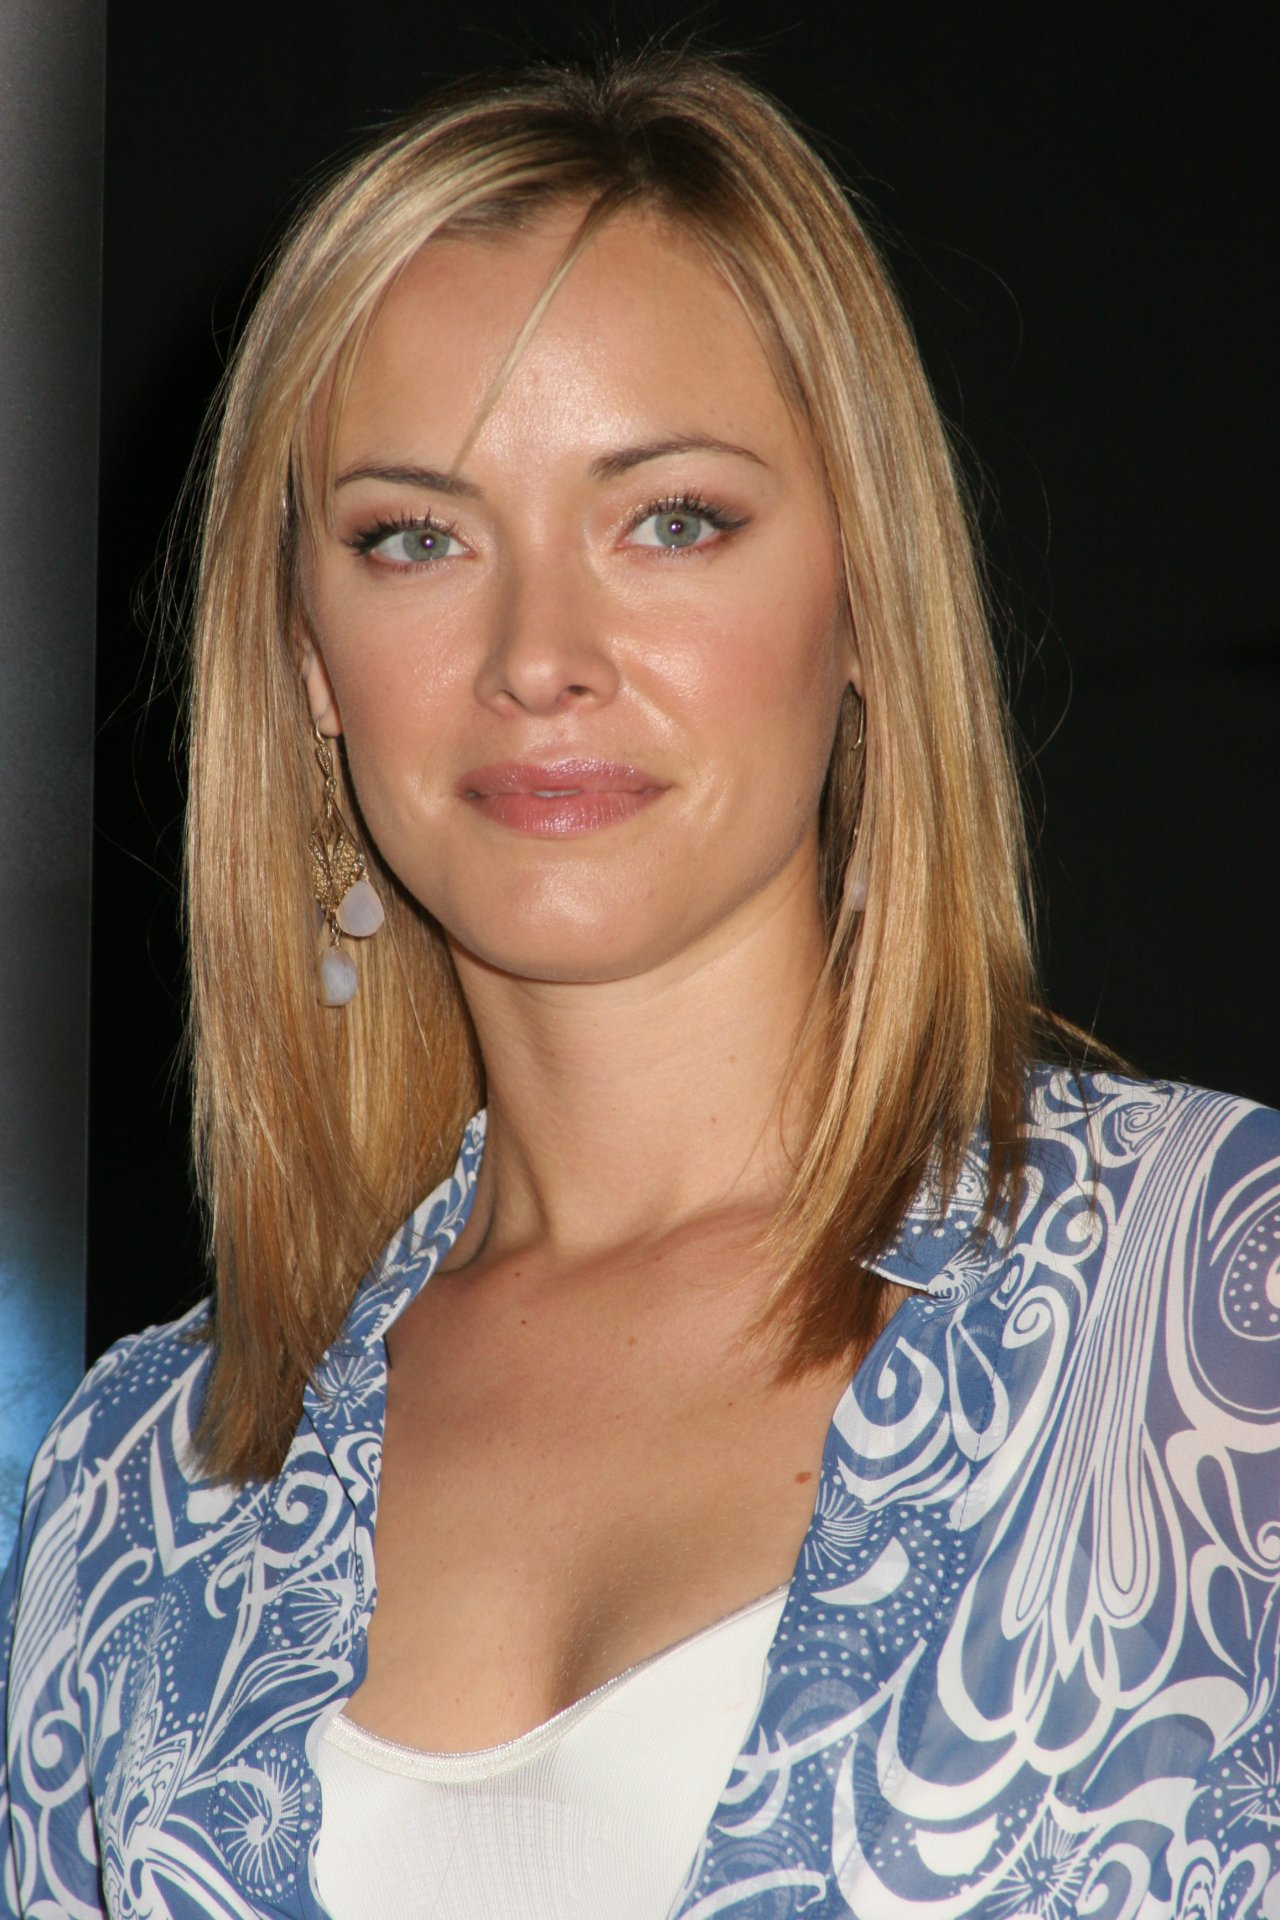 kristanna loken black rosekristanna loken tx, kristanna loken black rose, kristanna loken fan, kristanna loken and jonathan, kristanna loken eric andre show, kristanna loken in boy meets world, kristanna loken kimdir, kristanna loken instagram, kristanna loken 2016, kristanna loken фильмы, kristanna loken twitter, kristanna loken hd wallpapers, kristanna loken facebook, kristanna loken brunilde, kristanna loken terminatrix, kristanna loken net worth, kristanna loken fansite, kristanna loken death